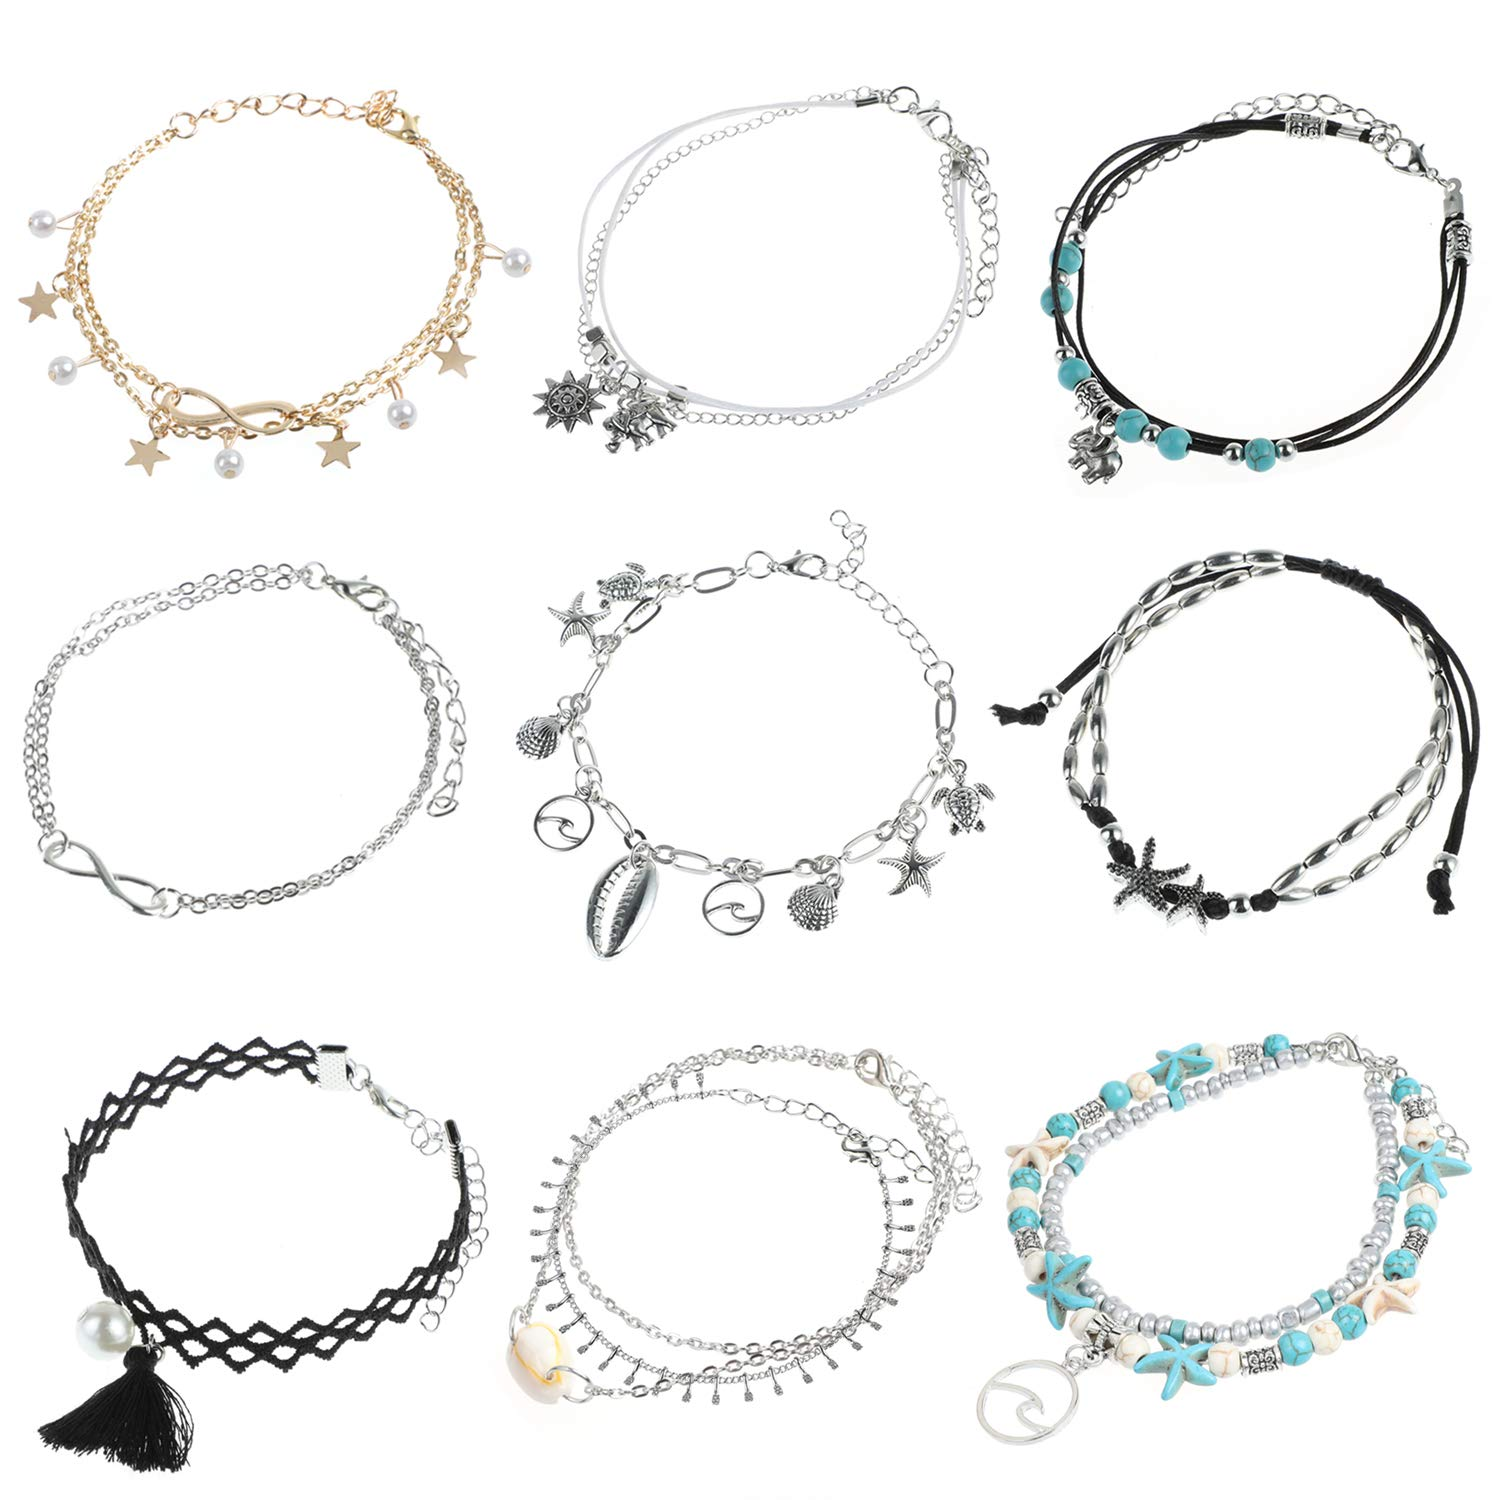 Adjustable Barefoot Ankle Chains Starfish Turtle Jewelry MWOOT Pack 9 Summer Beach Anklet Bracelets Set for Women Girls